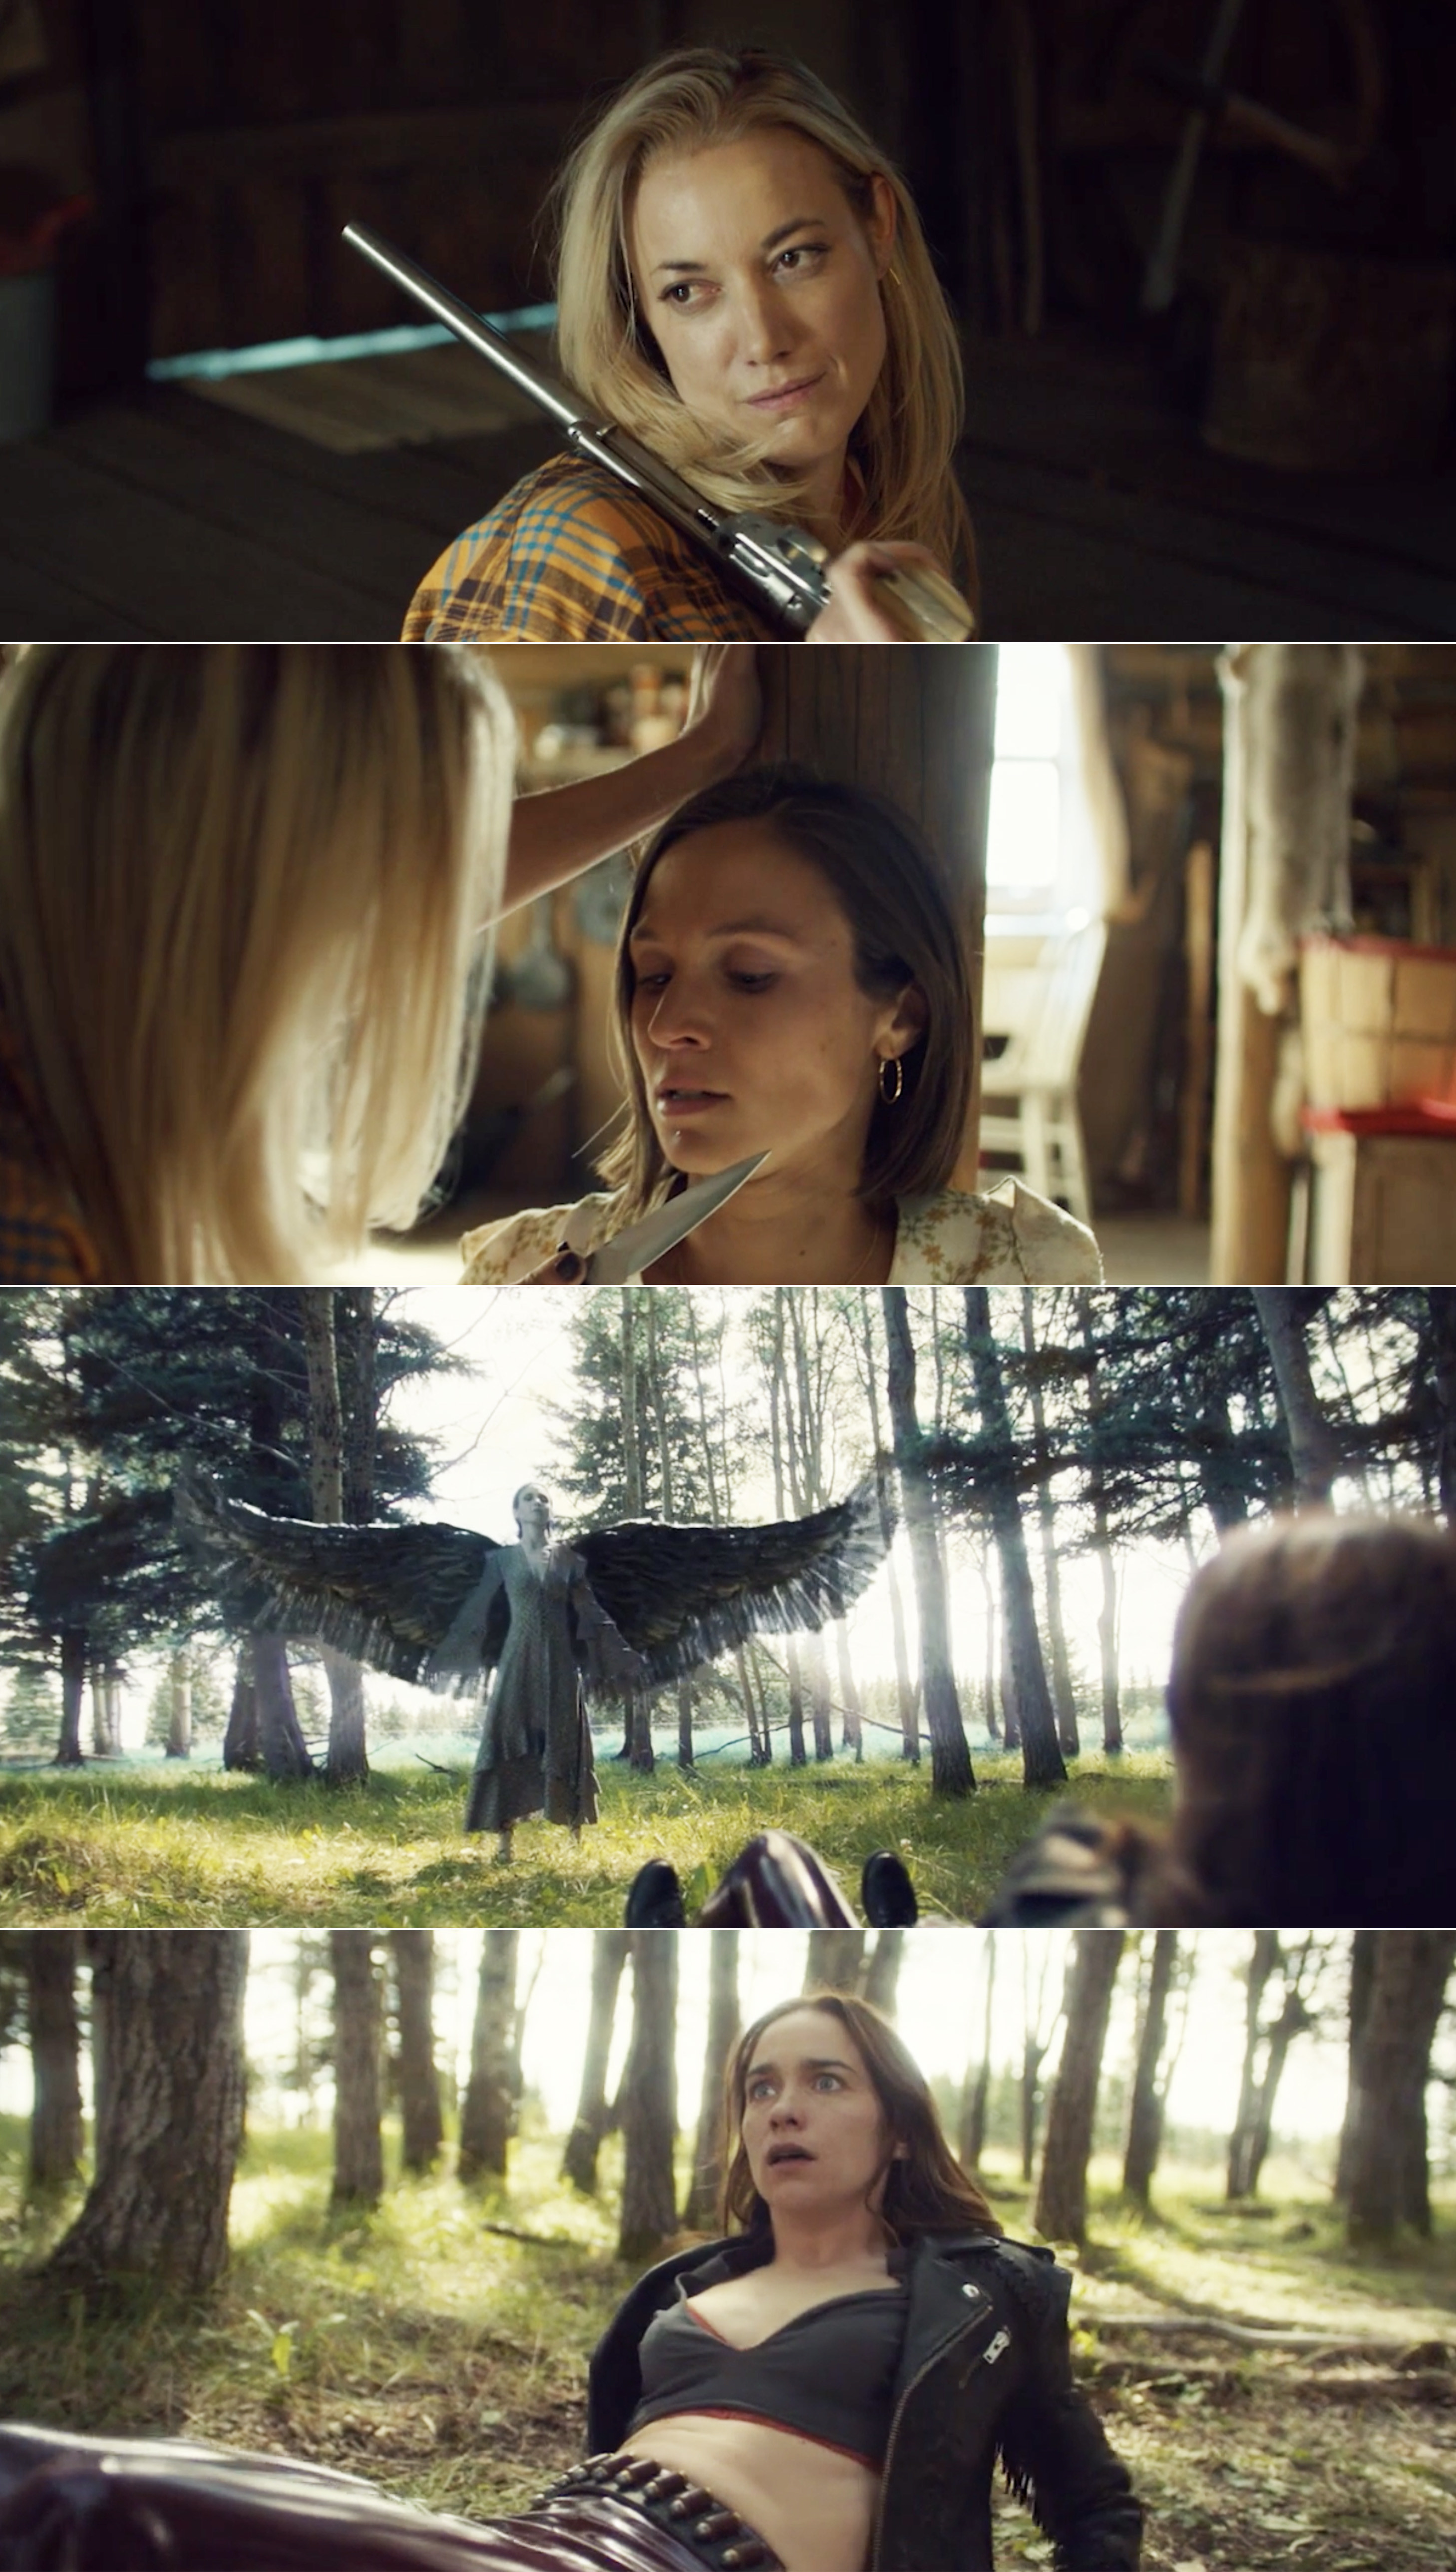 Jolene threatening Waverly with a knife and Wynonna looking shocked while seeing Waverly with black angel wings